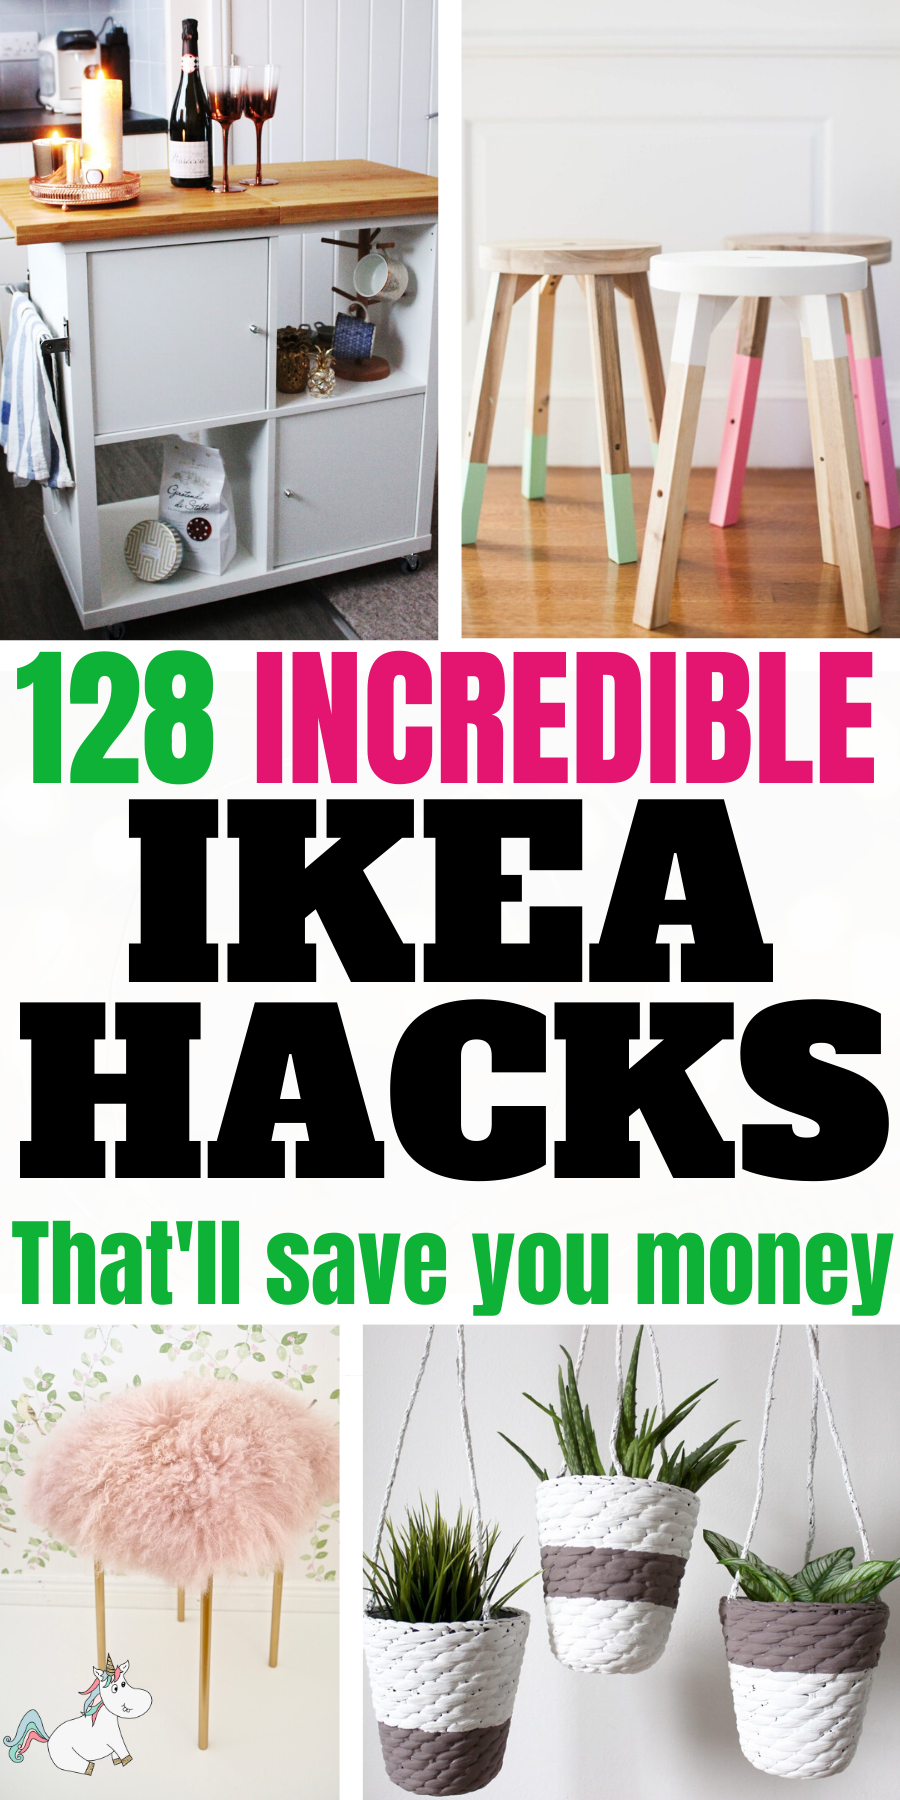 128 Incredible DIY IKEA Hacks That'll Save You Money... Do you love DIY budget home decor? Then be sure to check out these Ikea Hack ideas that are all cheap and easy to do yet will leave your home looking beautiful & unique too! #themummyfront